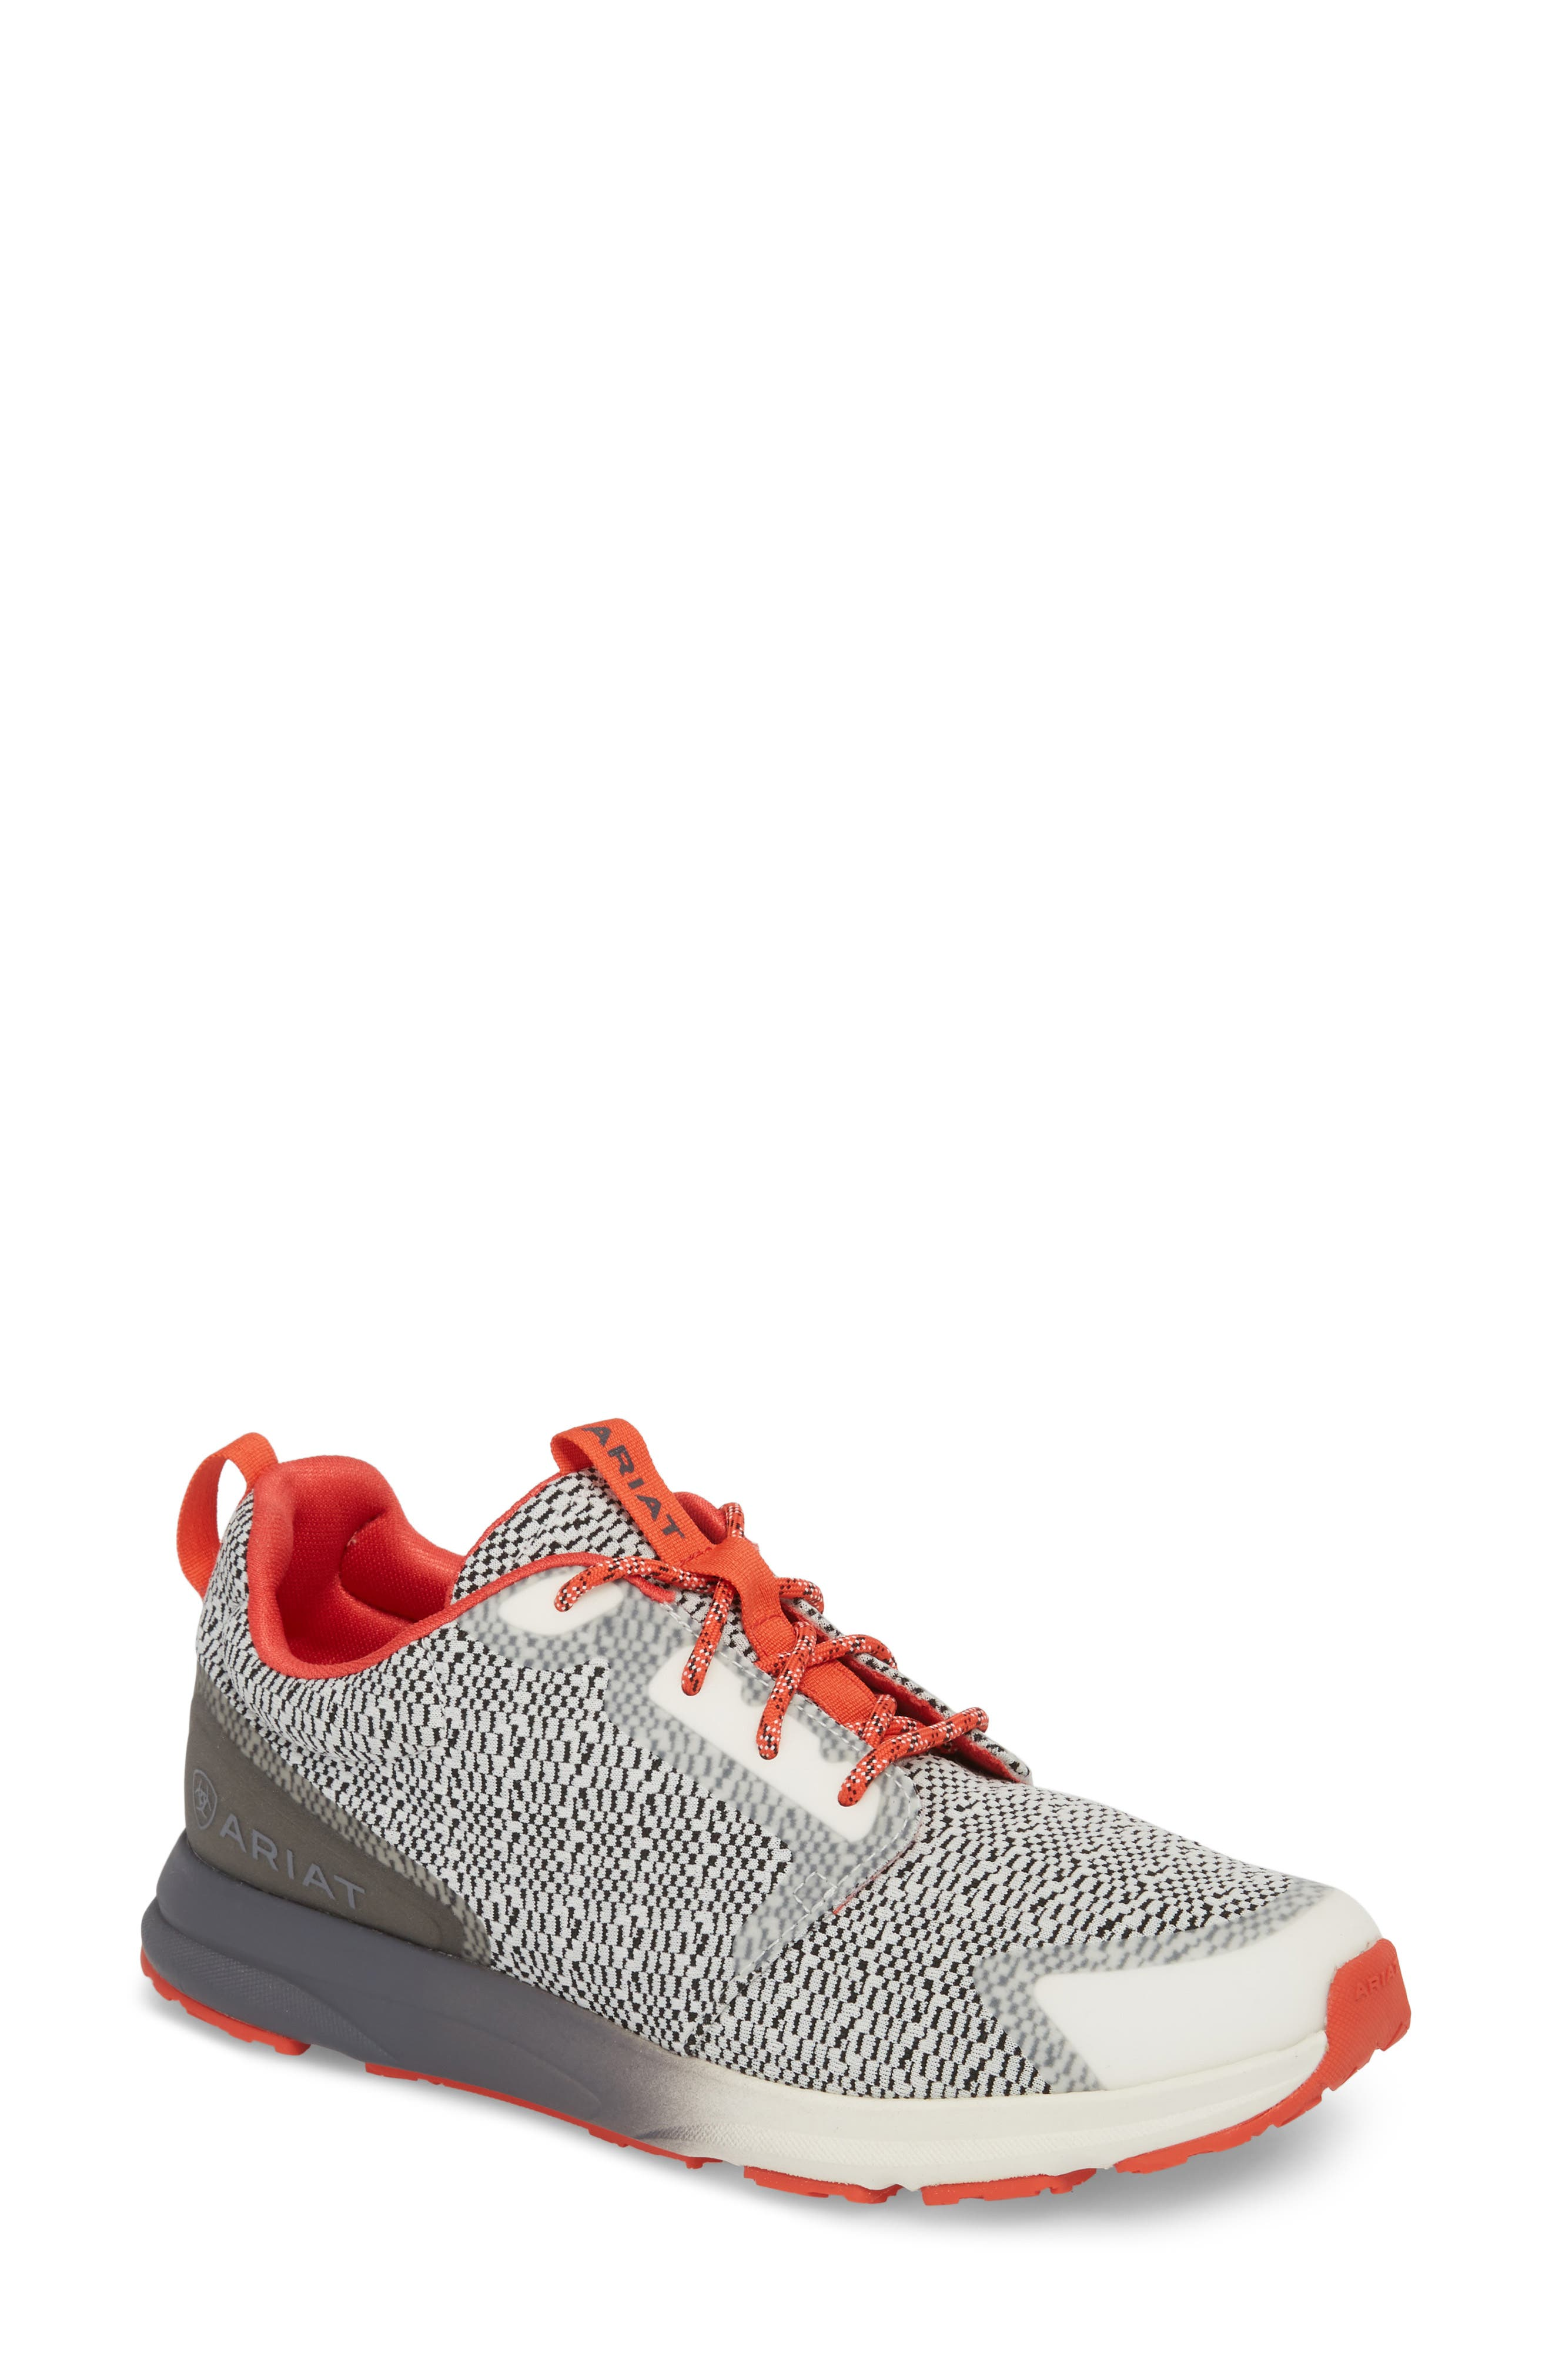 Fuse Print Sneaker,                             Main thumbnail 1, color,                             SALT AND PEPPER